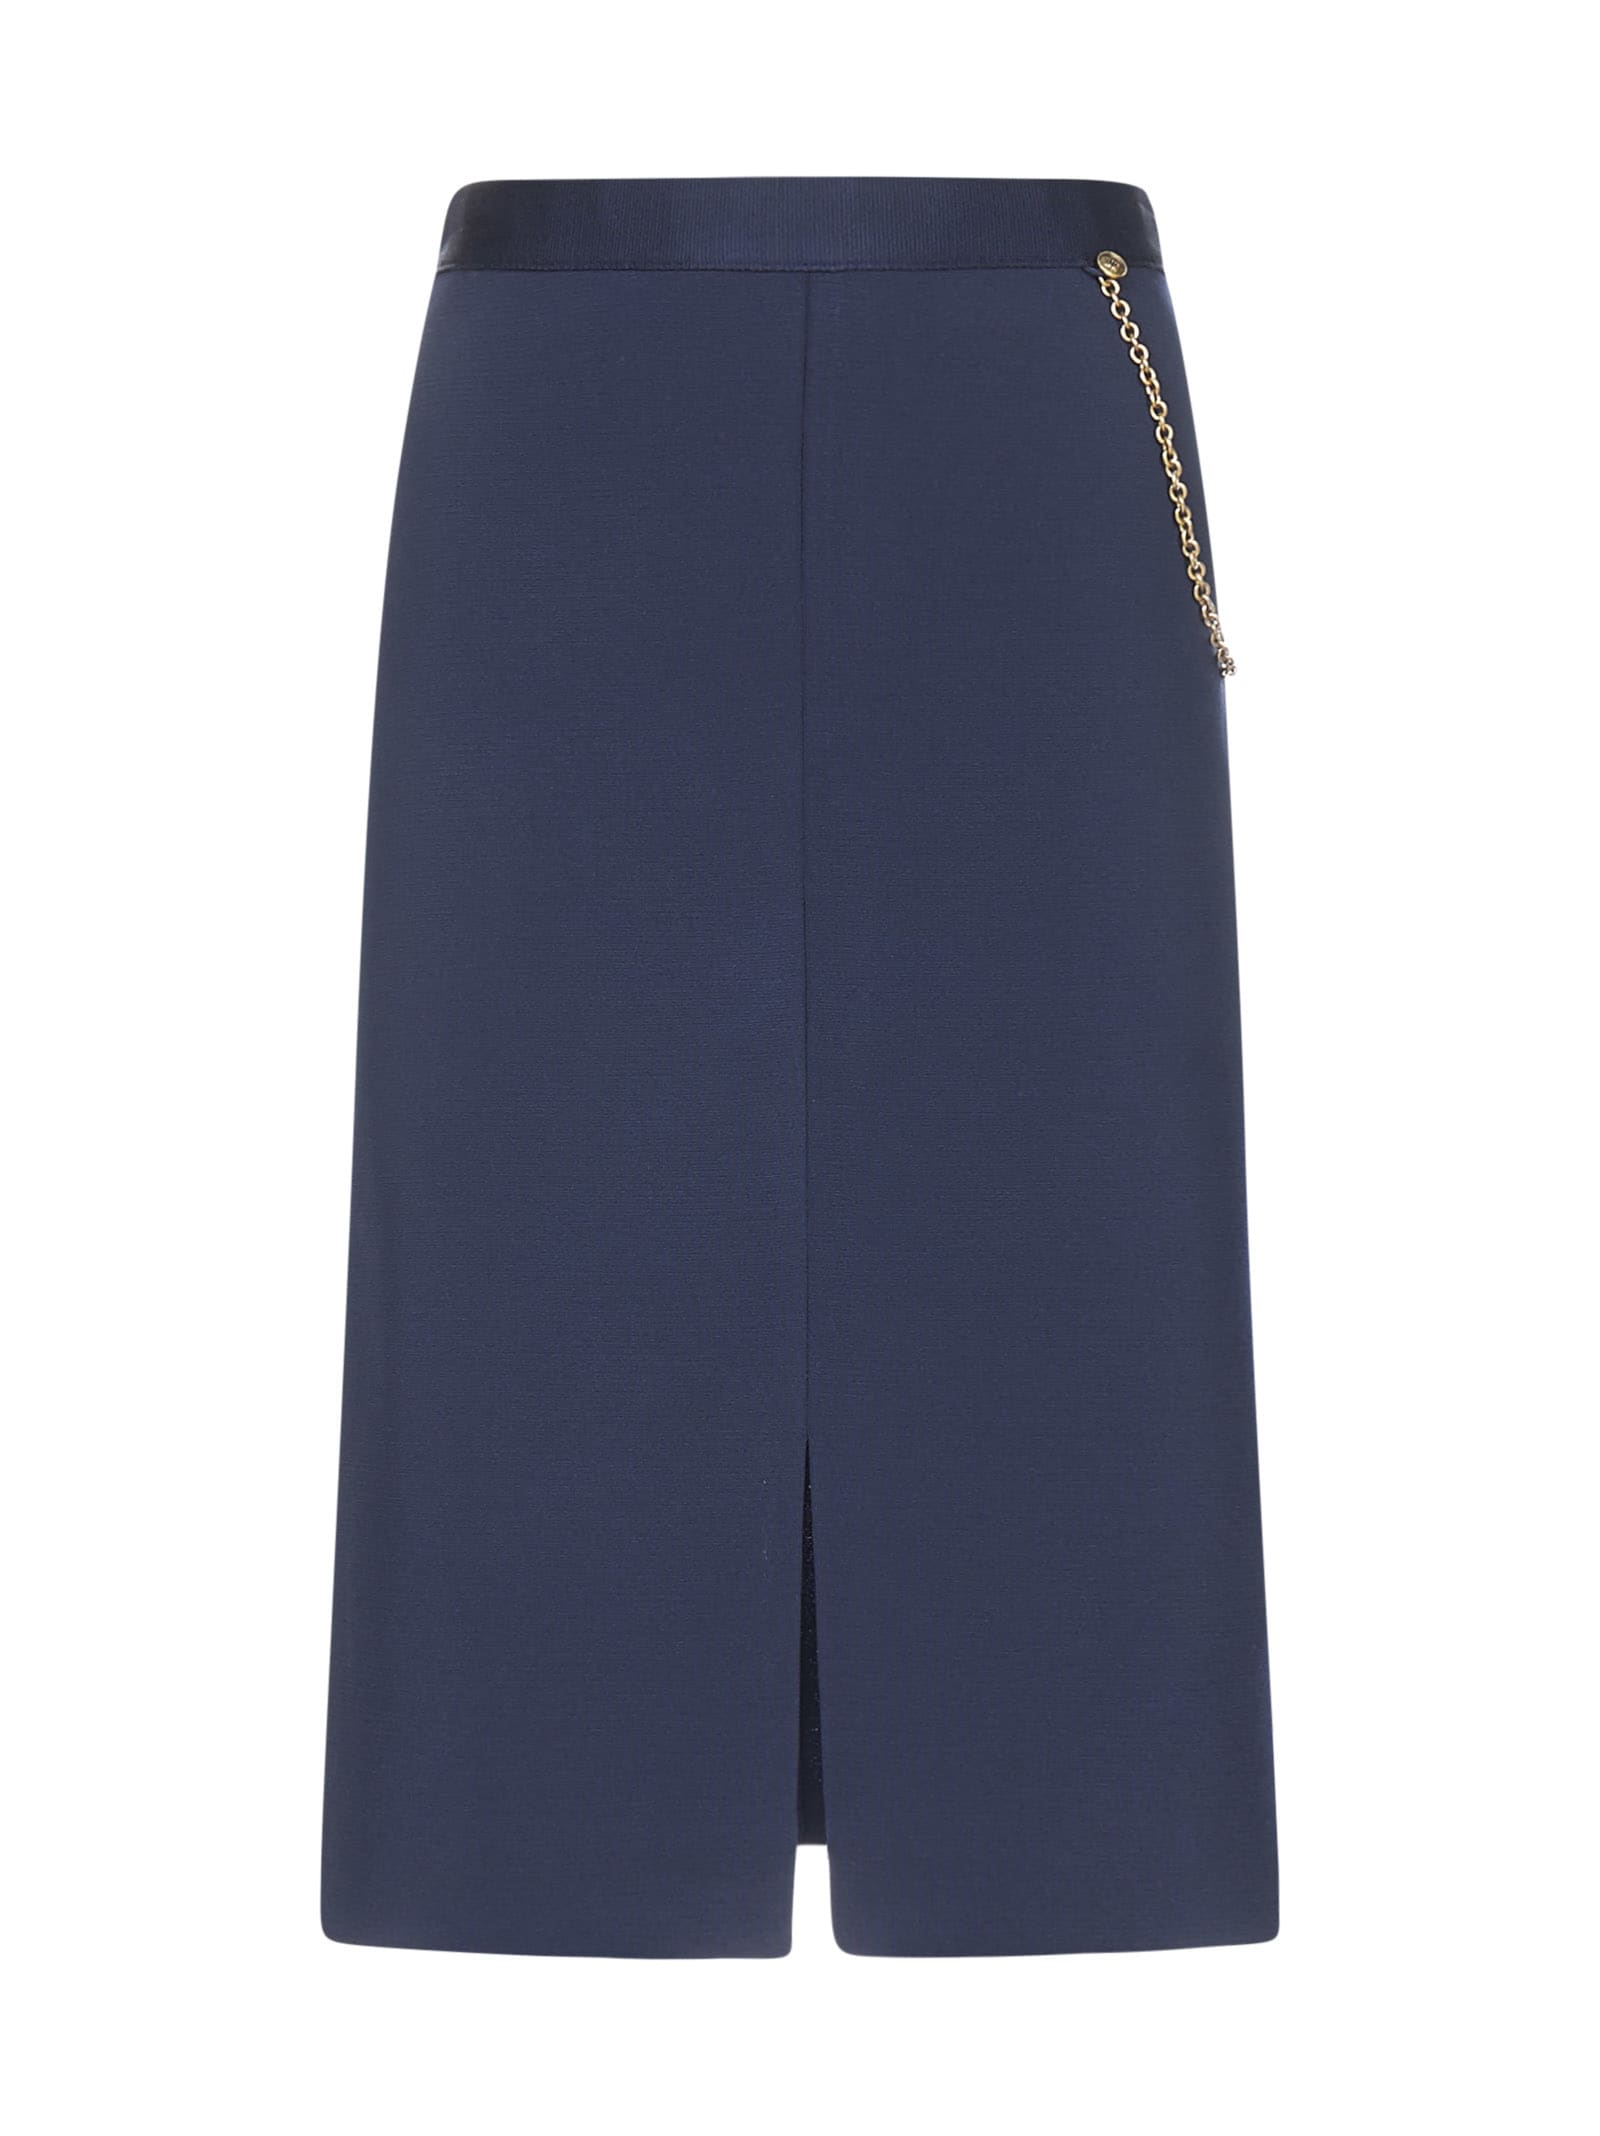 Givenchy Chain-detail Stretch Knit Skirt